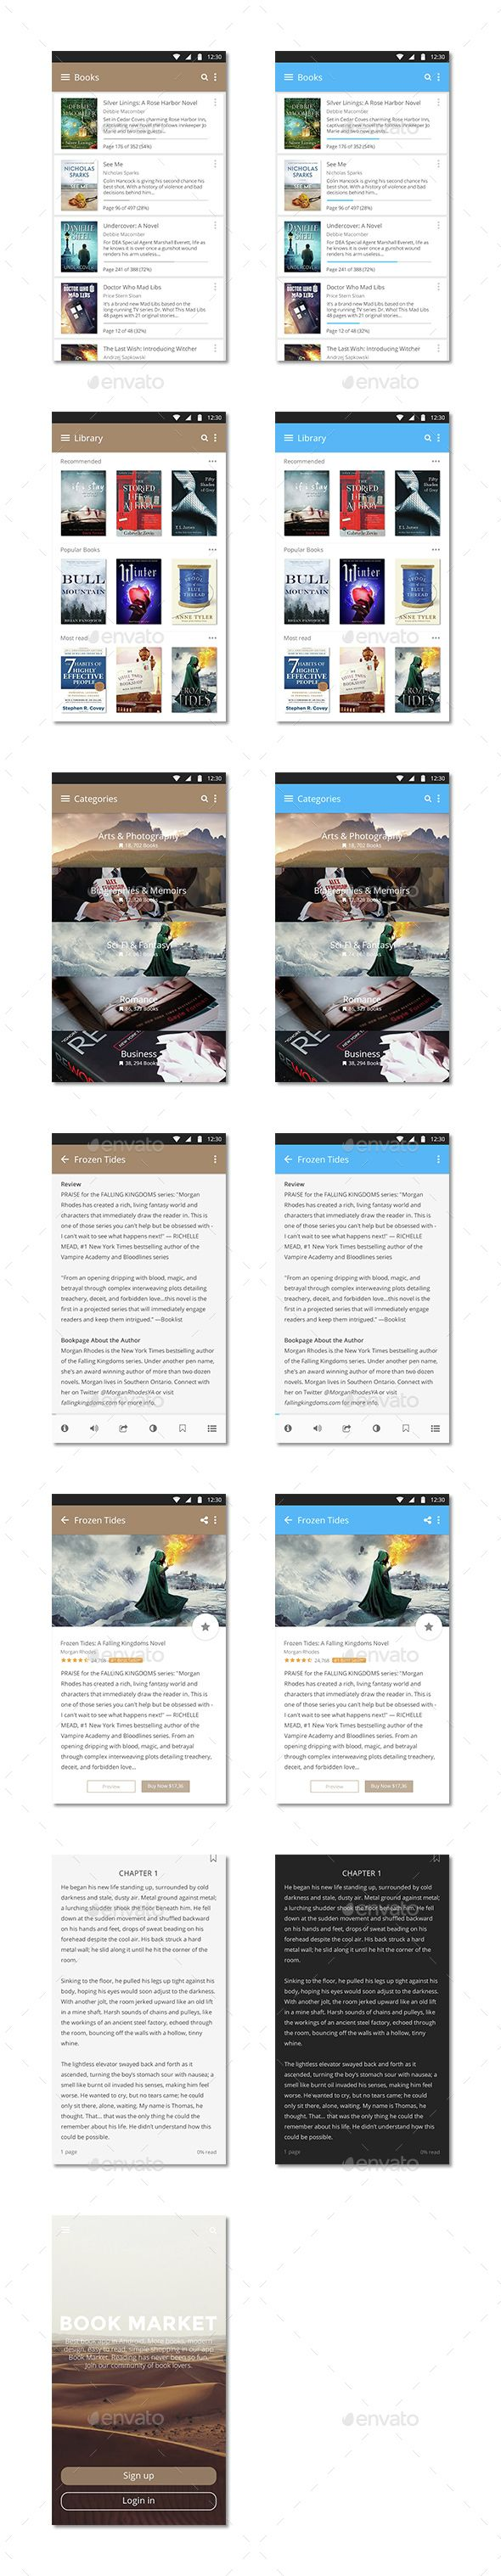 Book Market Android (User Interfaces)